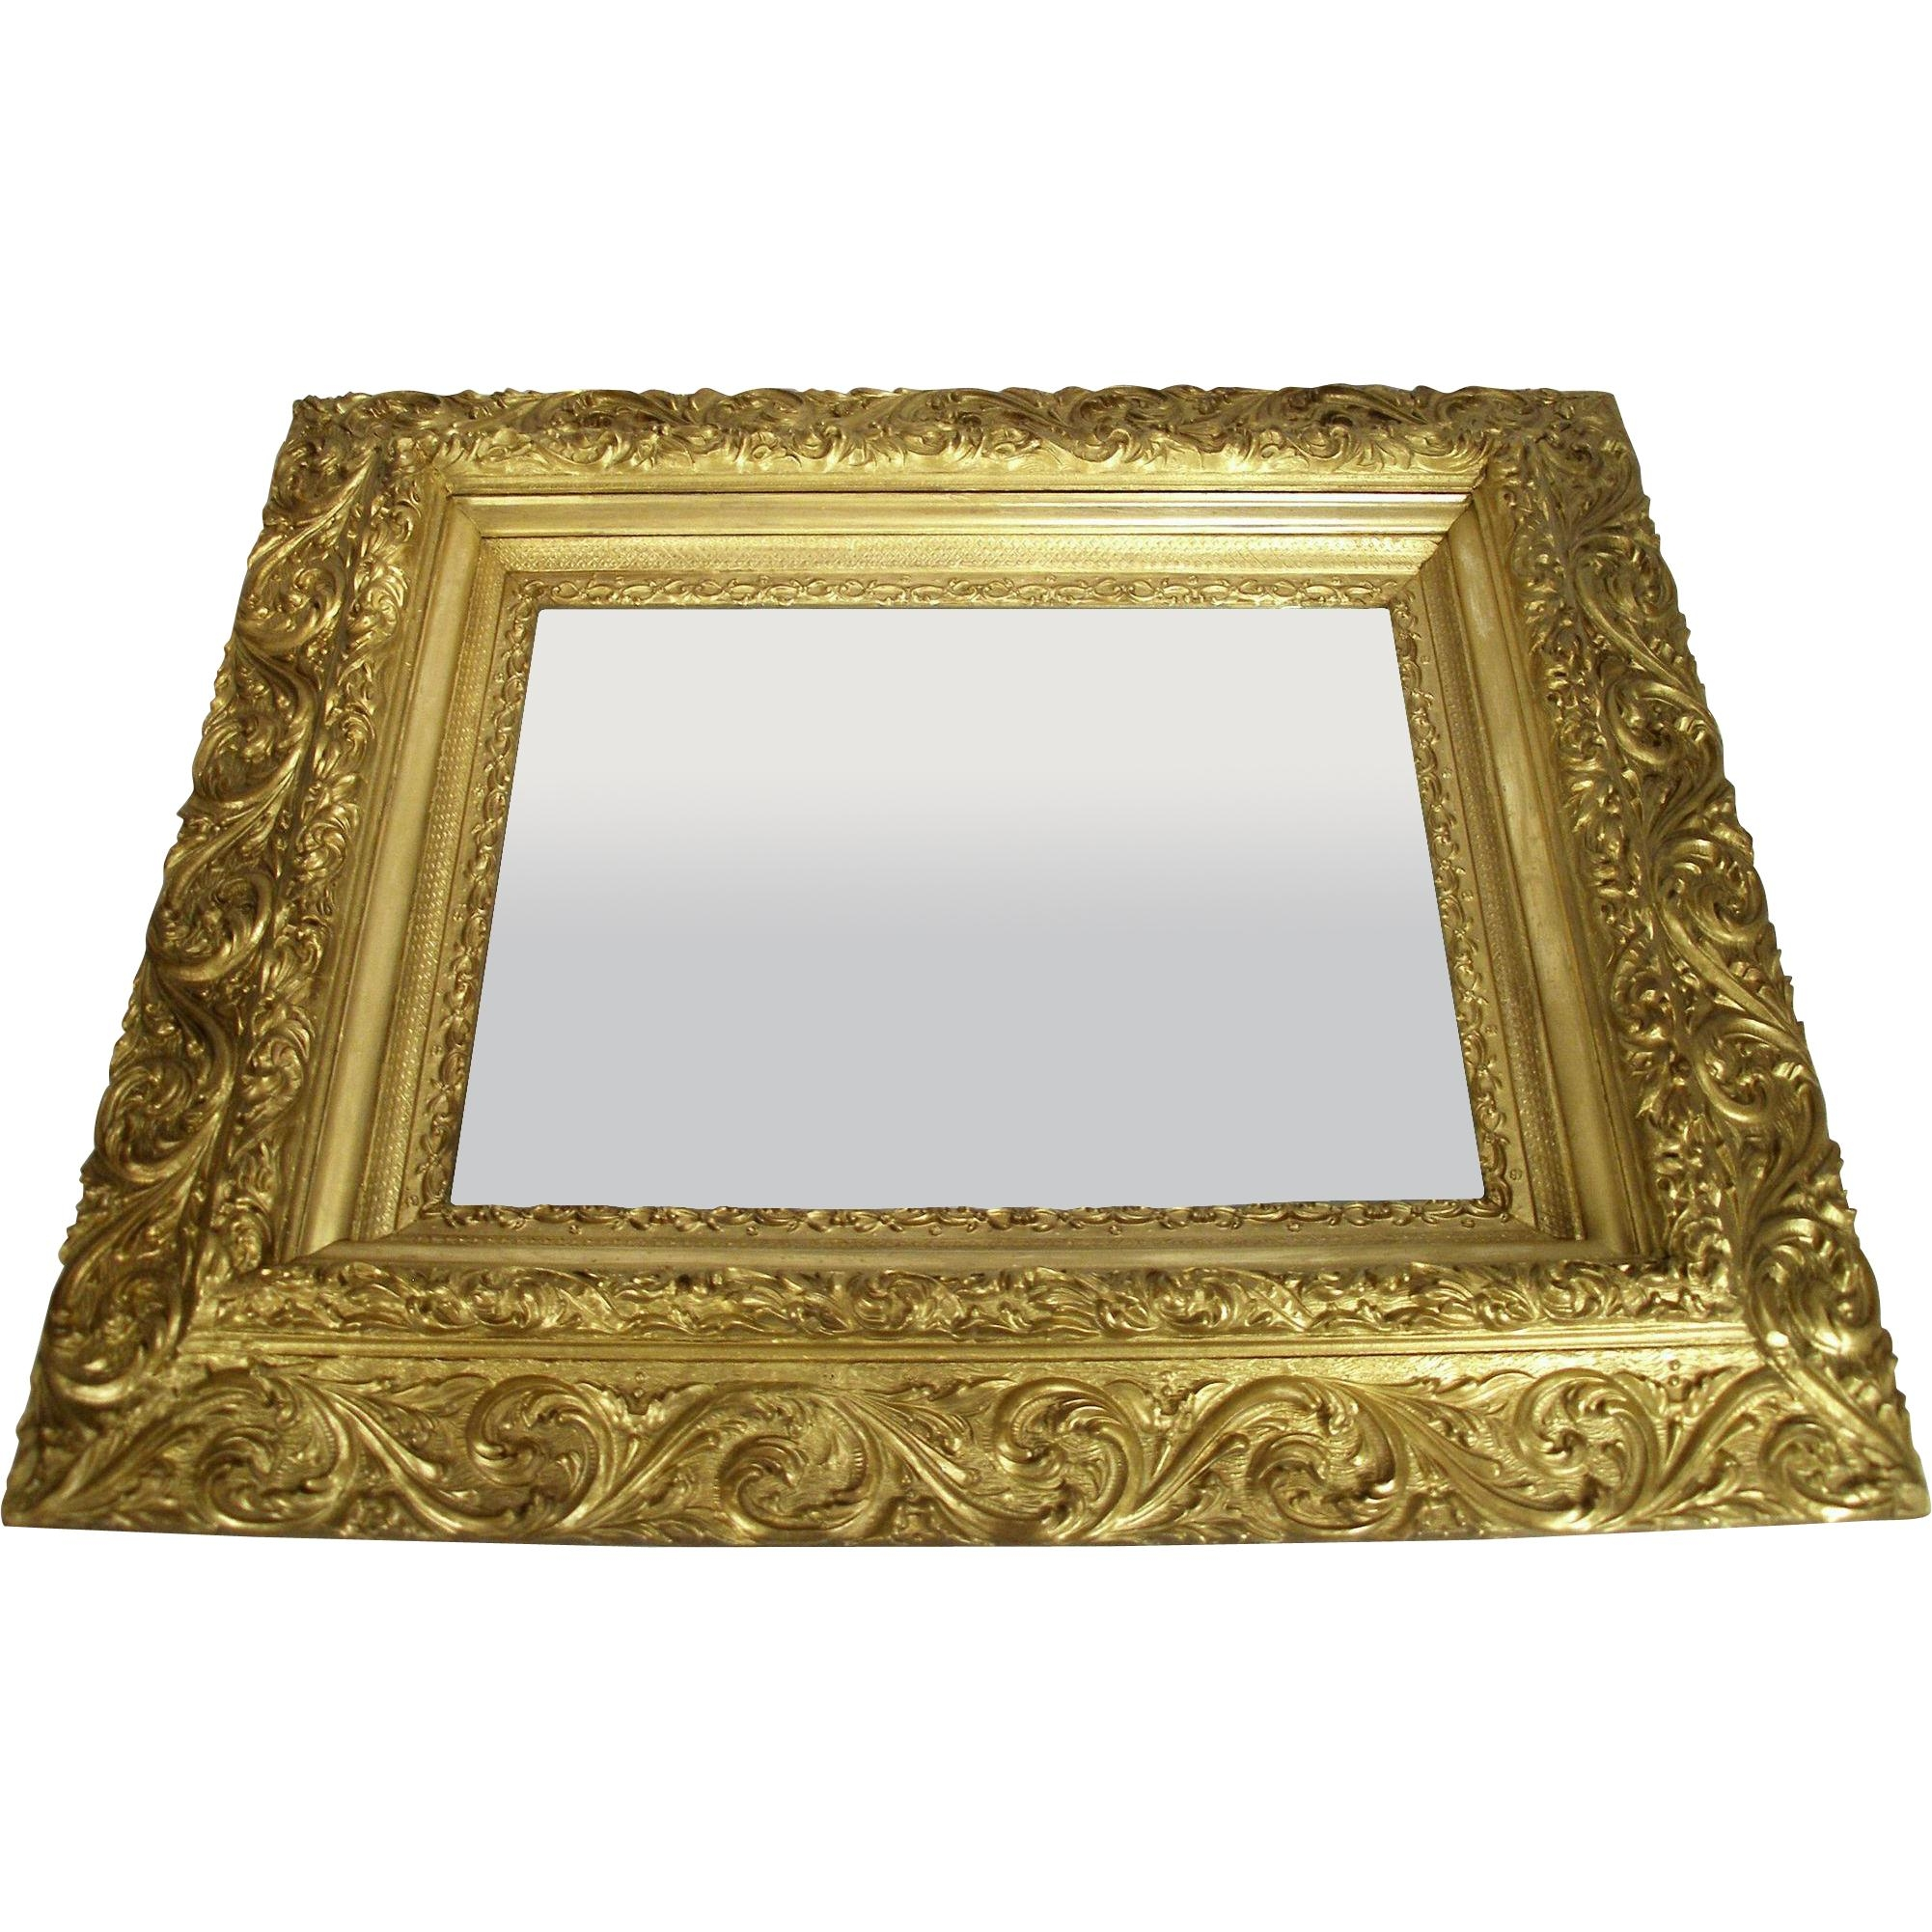 Antique Victorian Art Nouveau Gold Gilt Wood Frame Scroll Foliage With Art Nouveau Wall Mirror (Image 3 of 20)